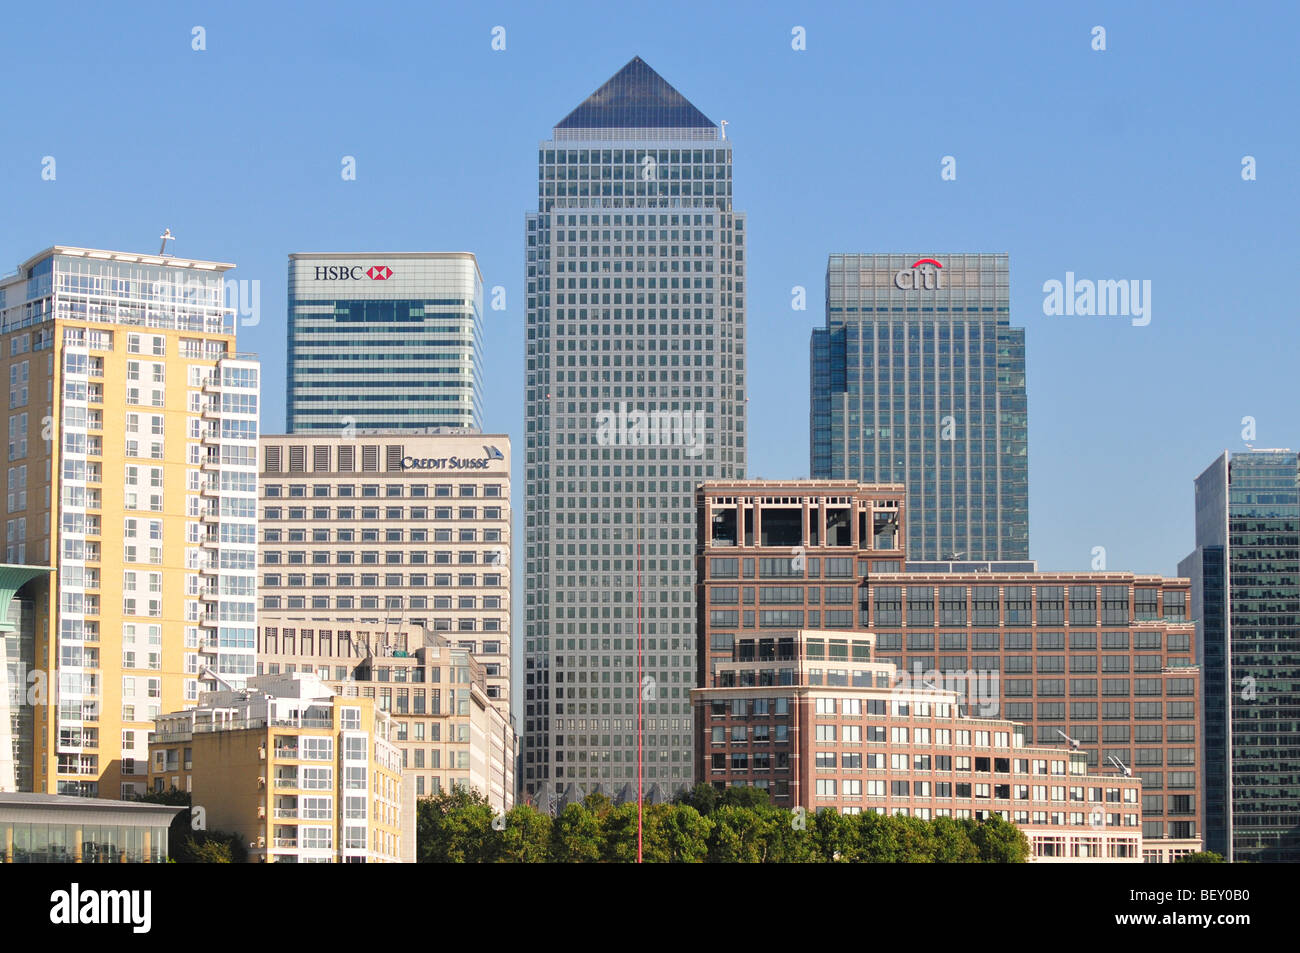 Canary Wharf Area of the London Docklands - Stock Image